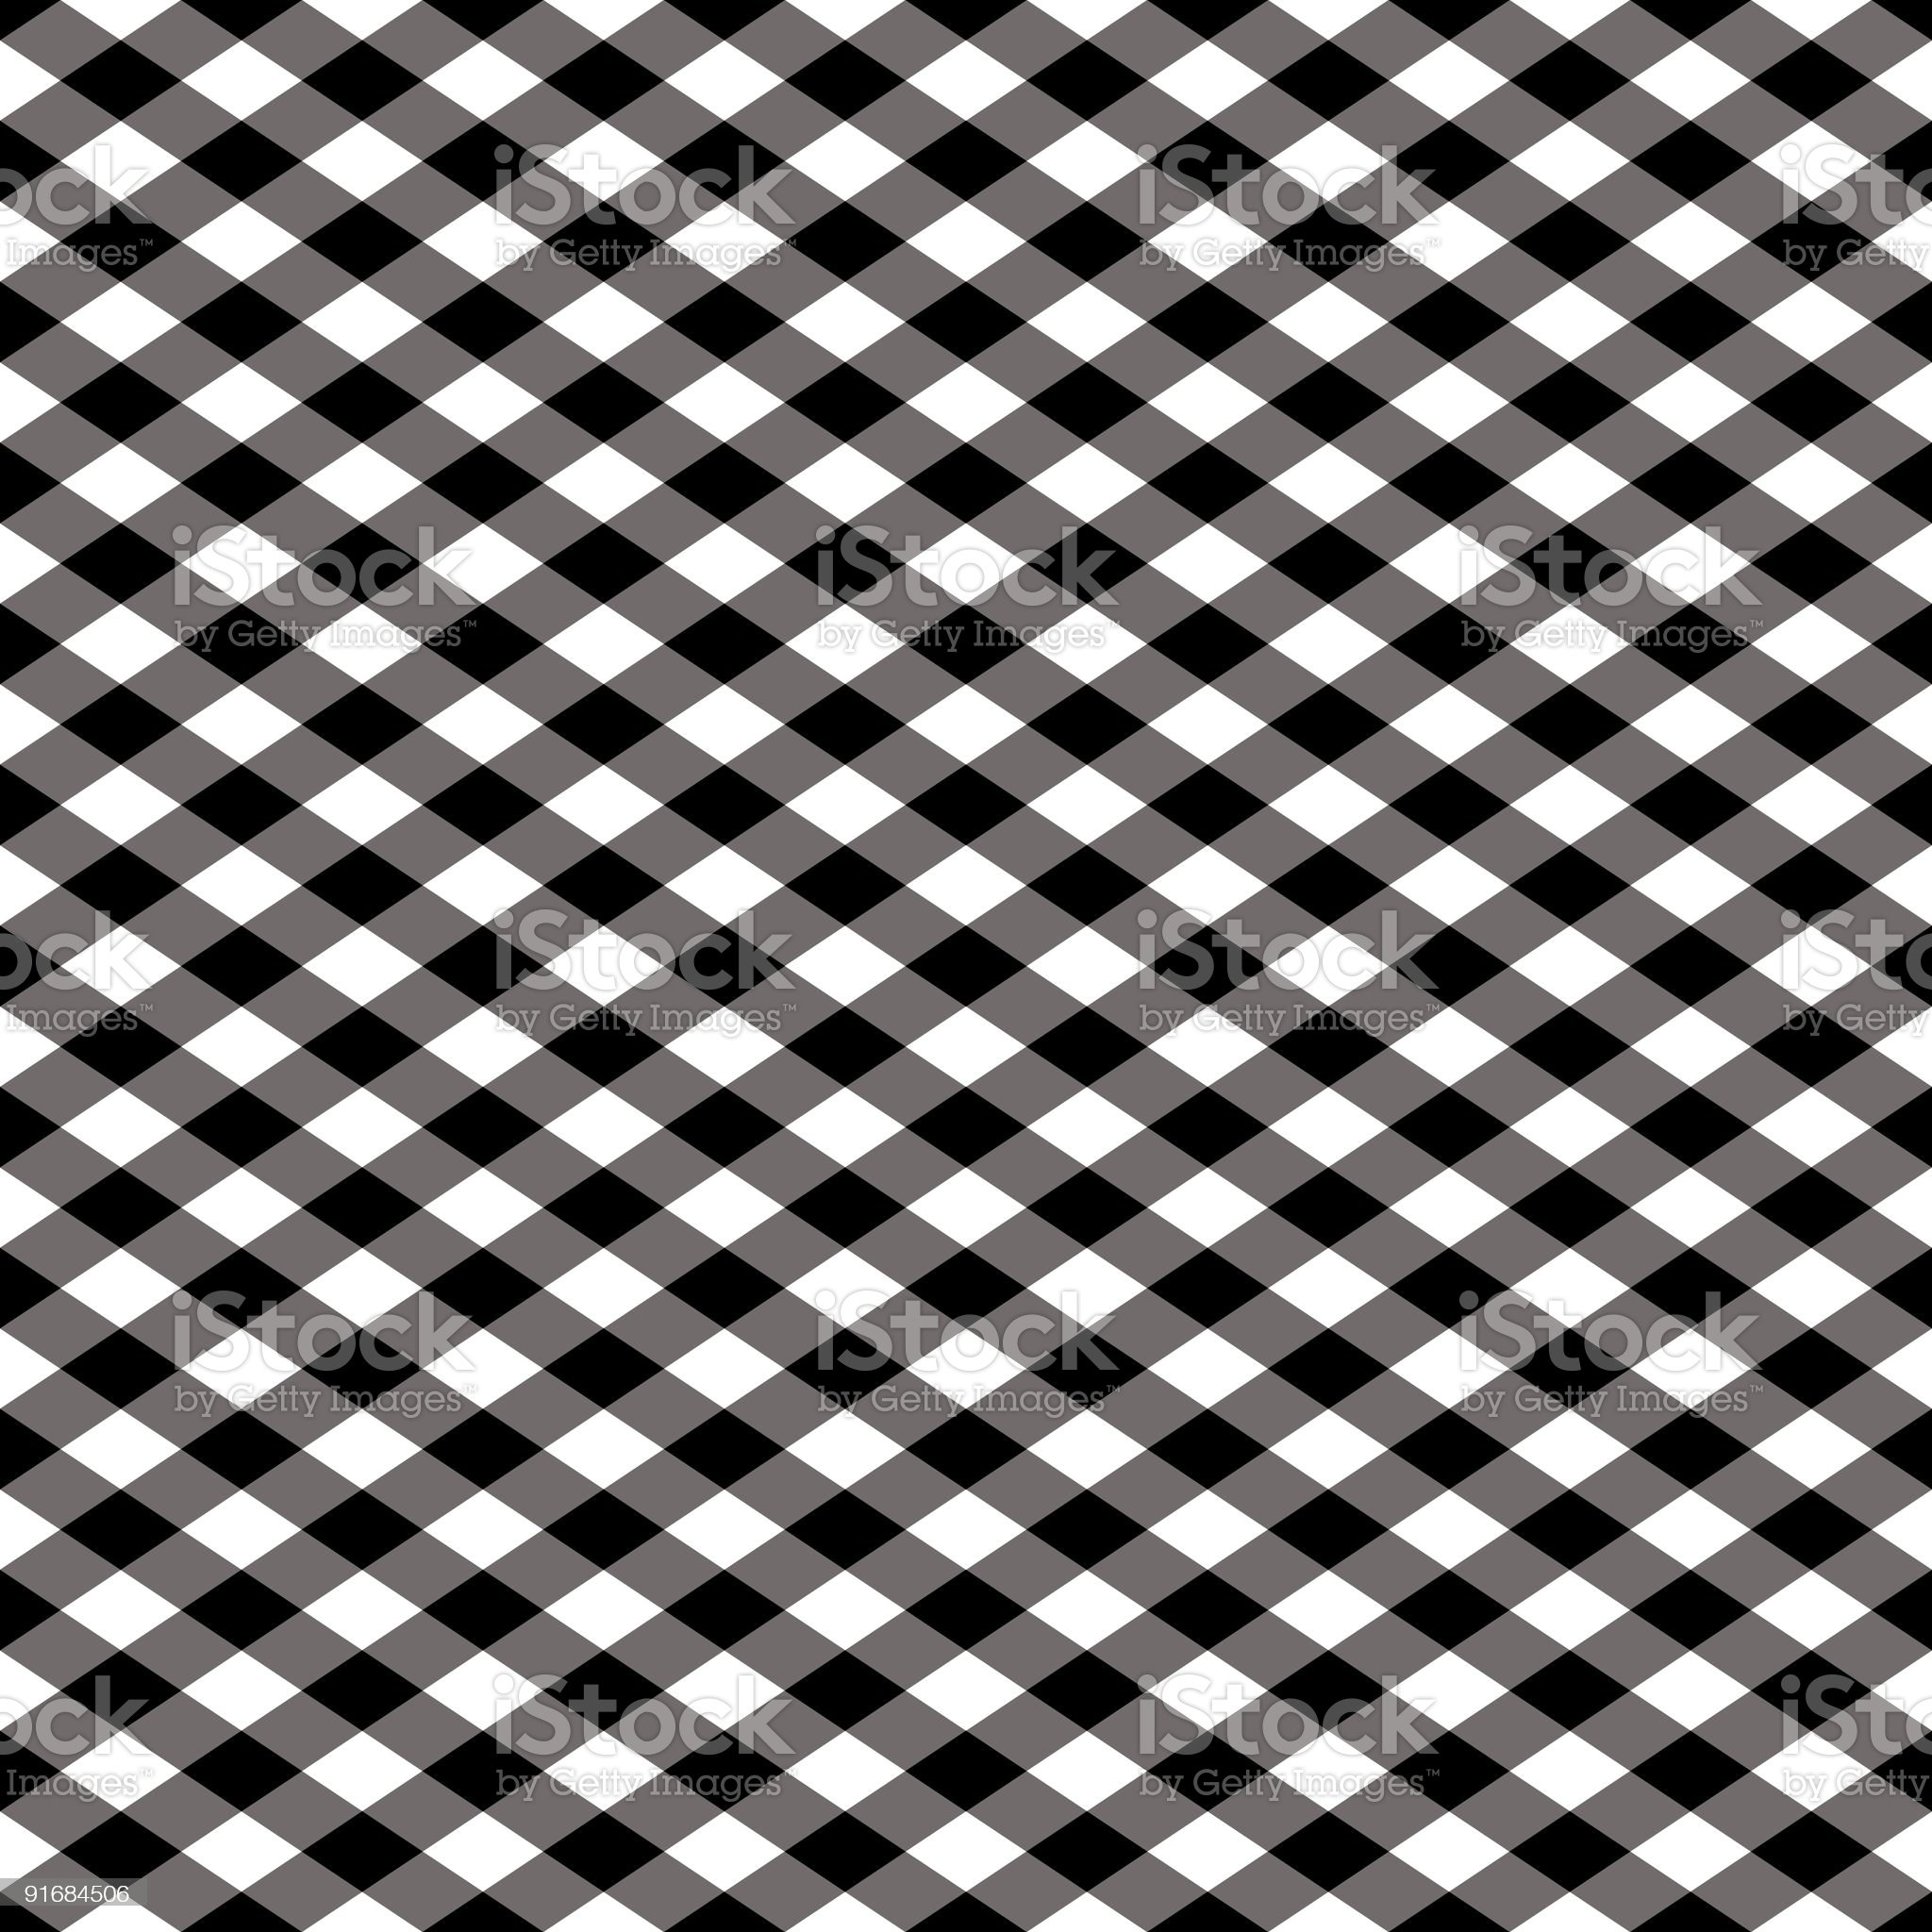 Gingham Pattern in Black and White royalty-free stock vector art